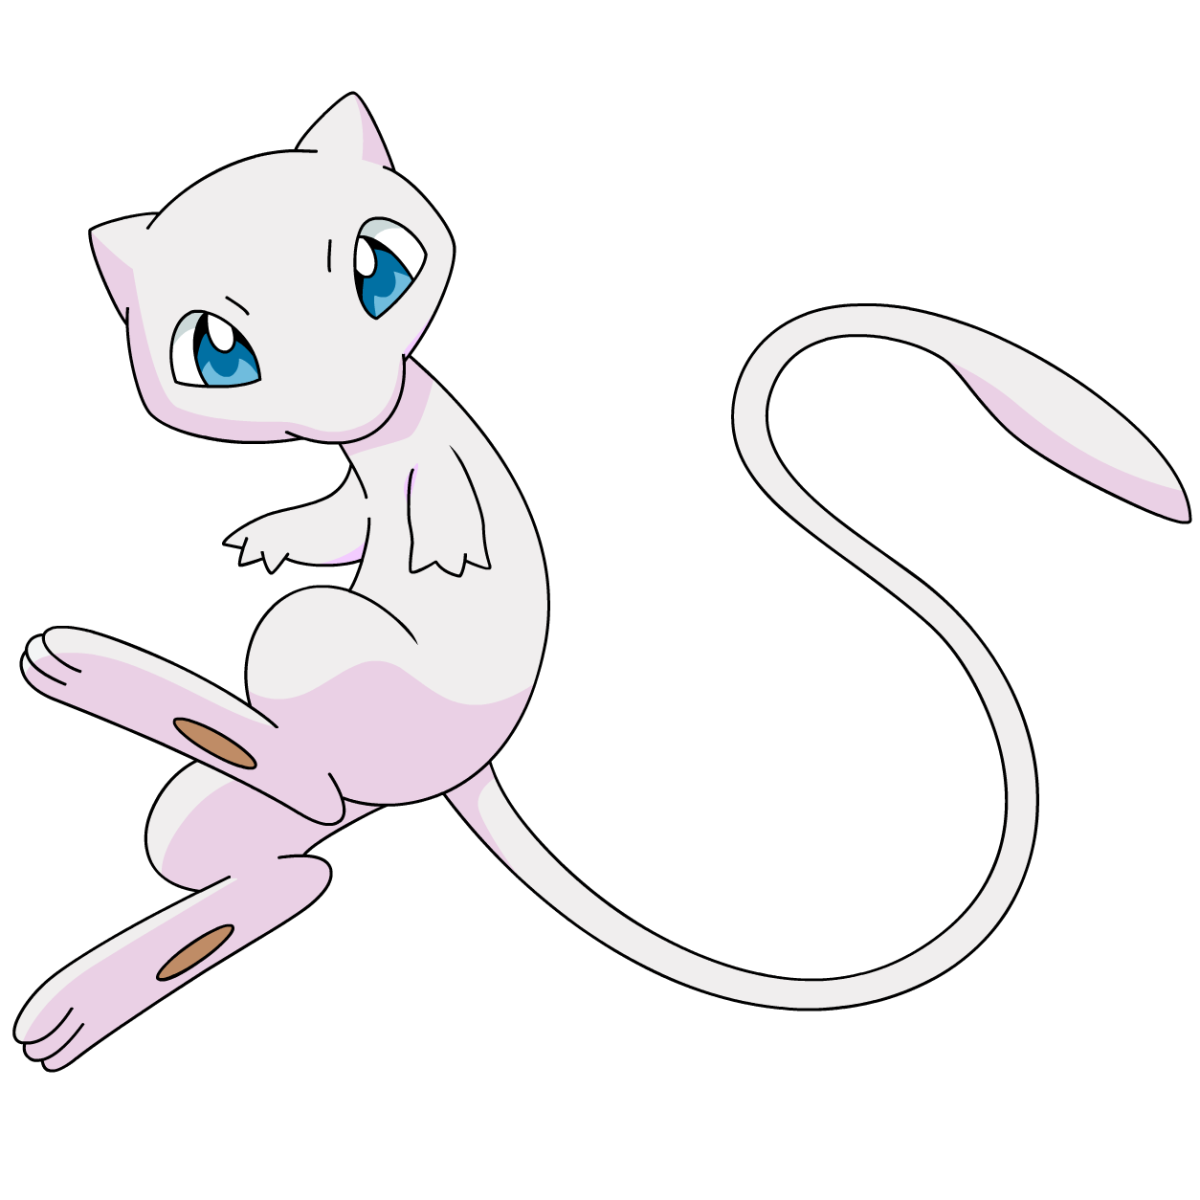 Check Out The Mew Distribution PokemonTrailer